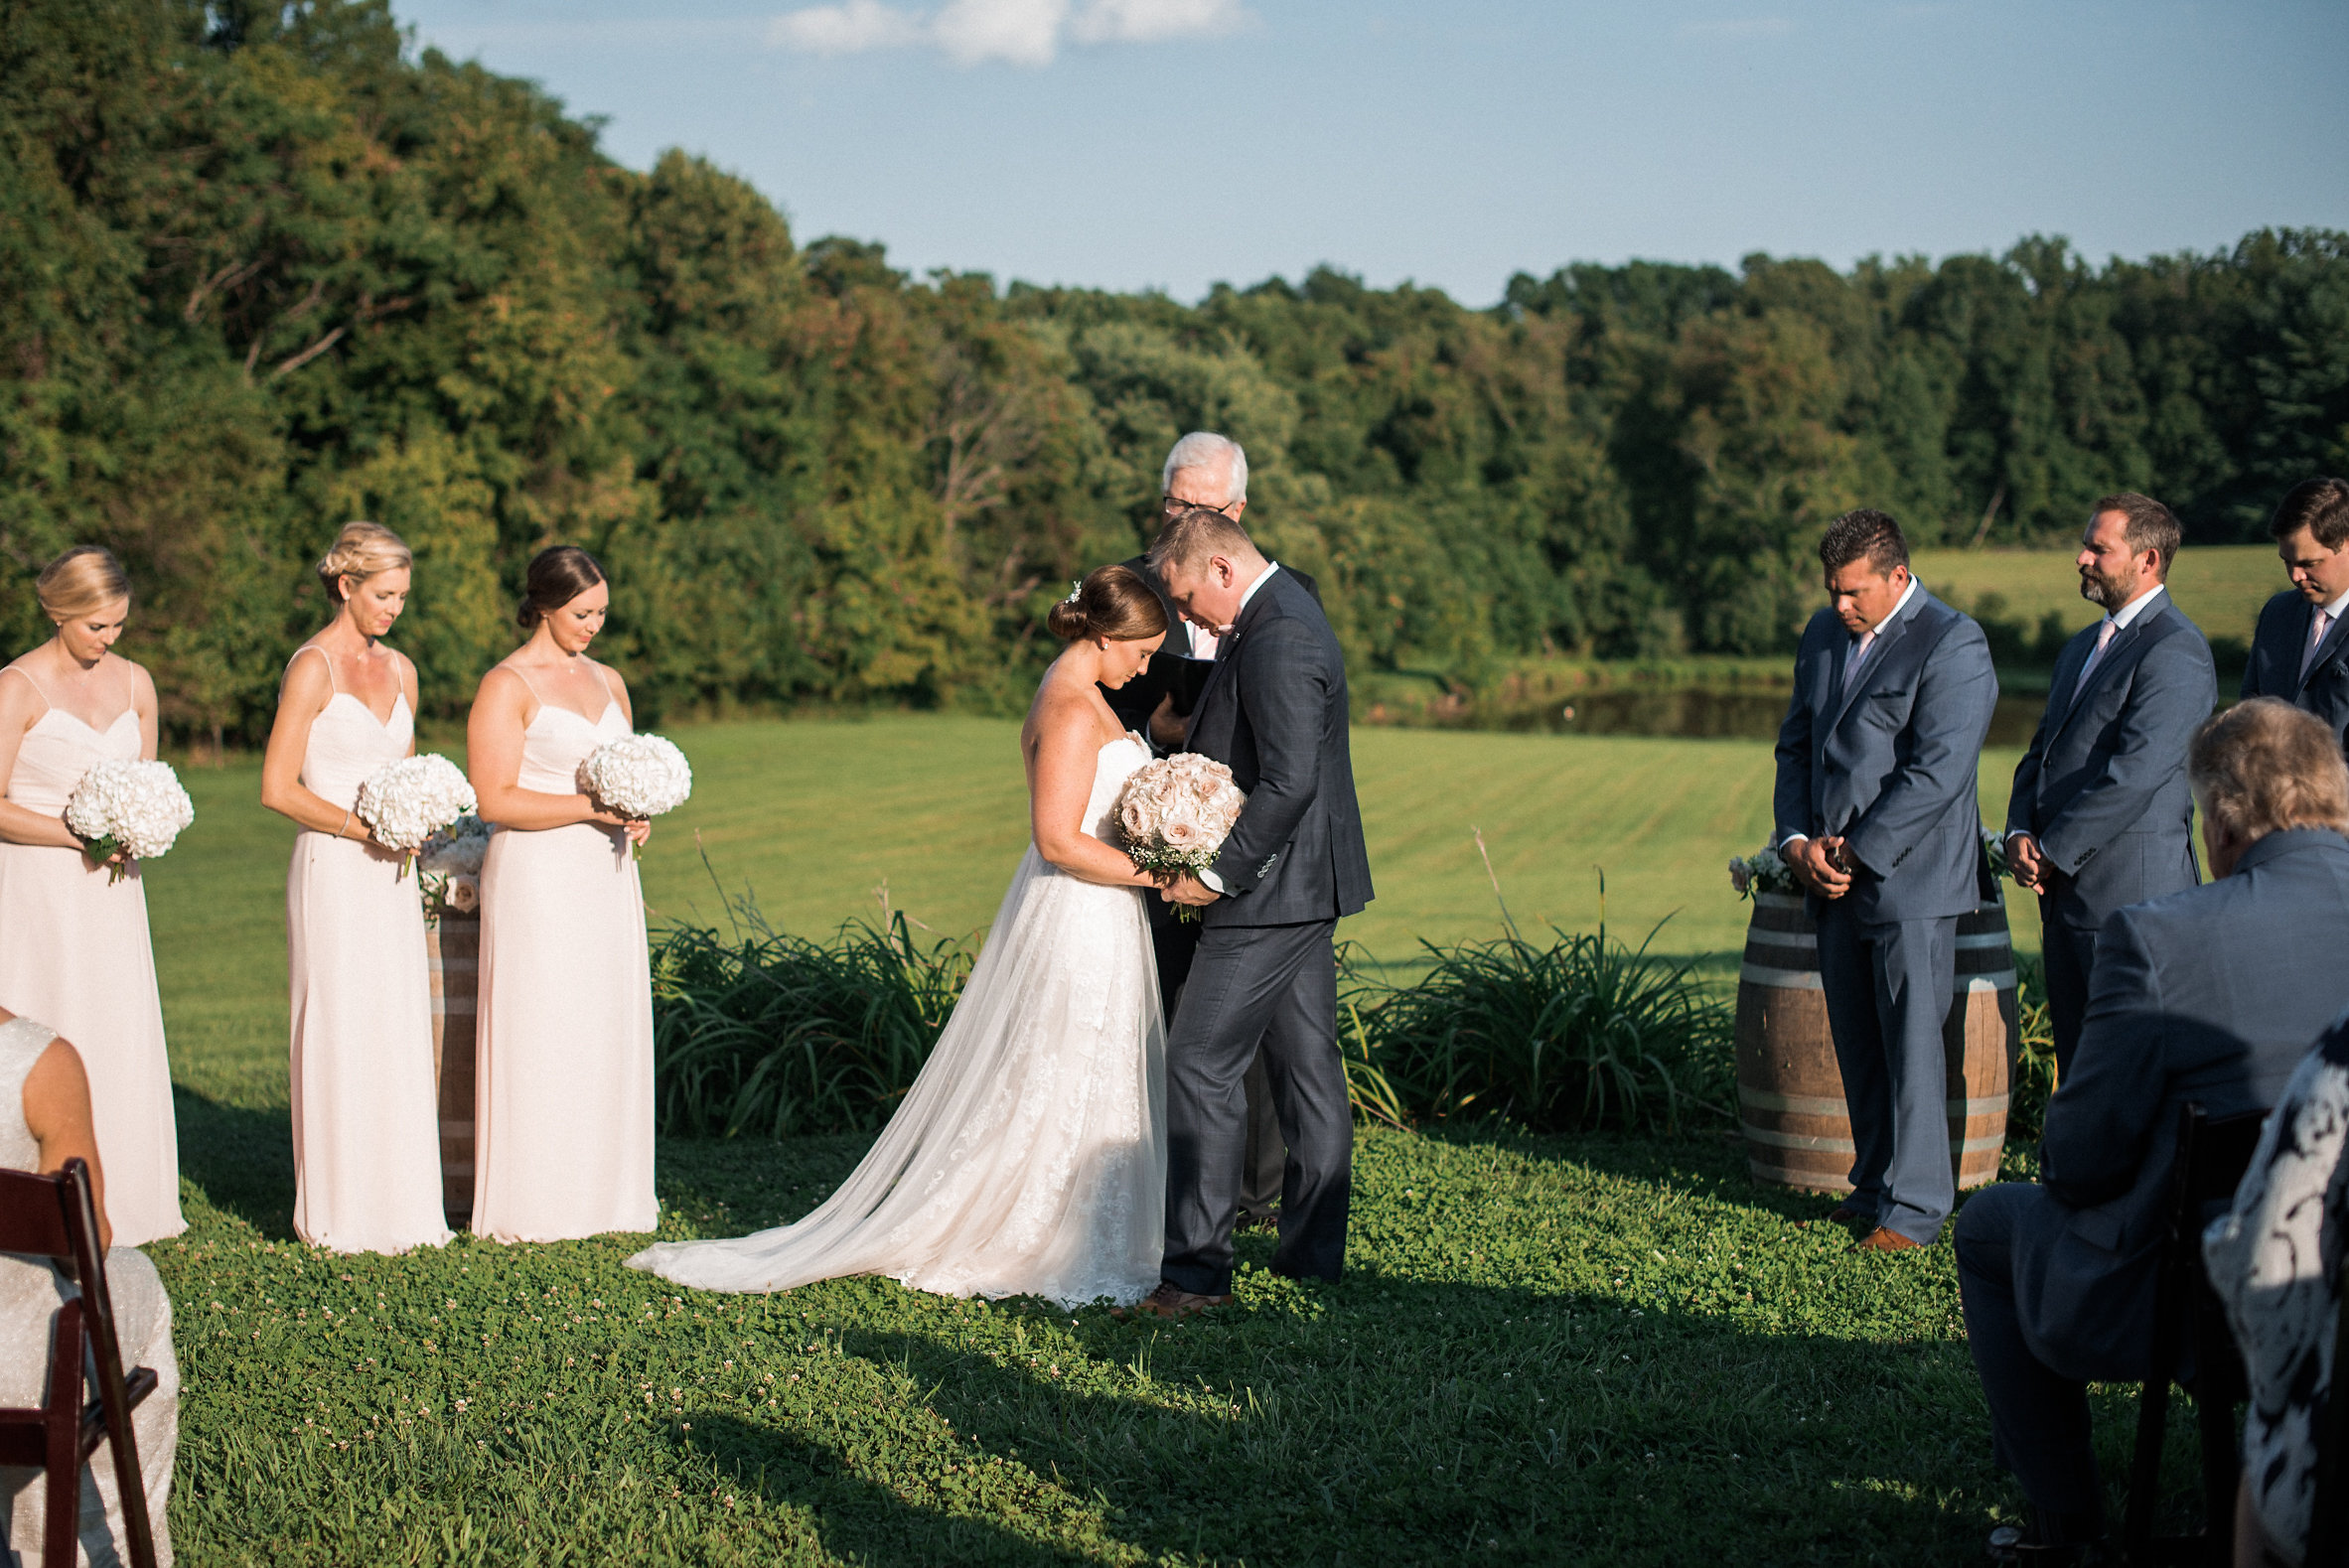 Bride and groom bowing heads during ceremony